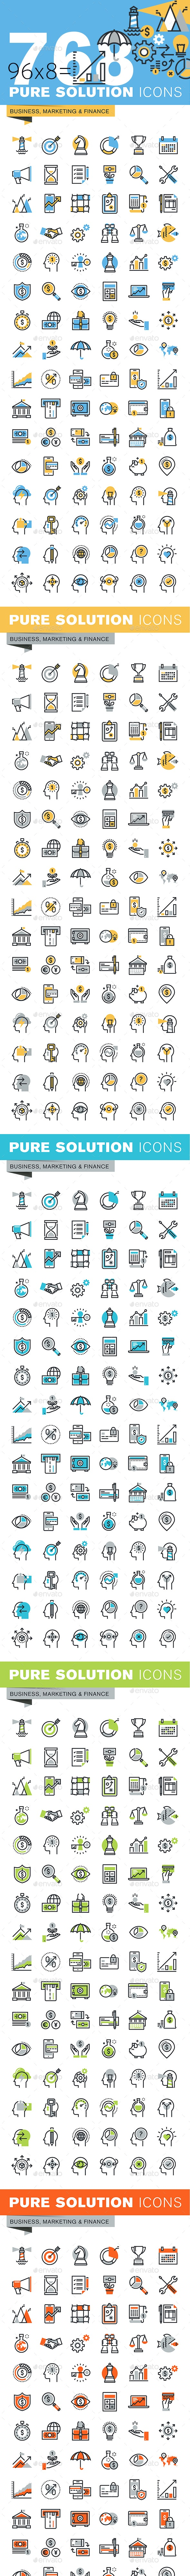 Set of Thin Line Flat Design Icons of Business and Finance - Business Icons